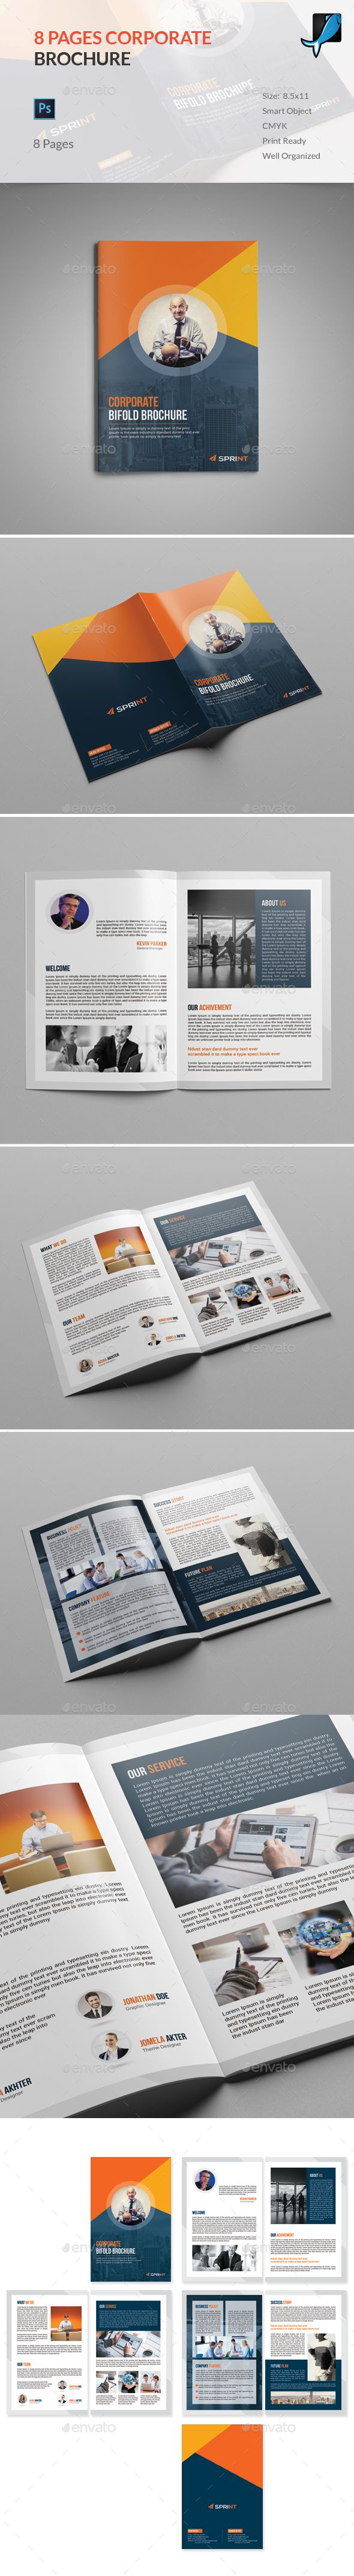 8 page brochure template can be used for any business purpose or